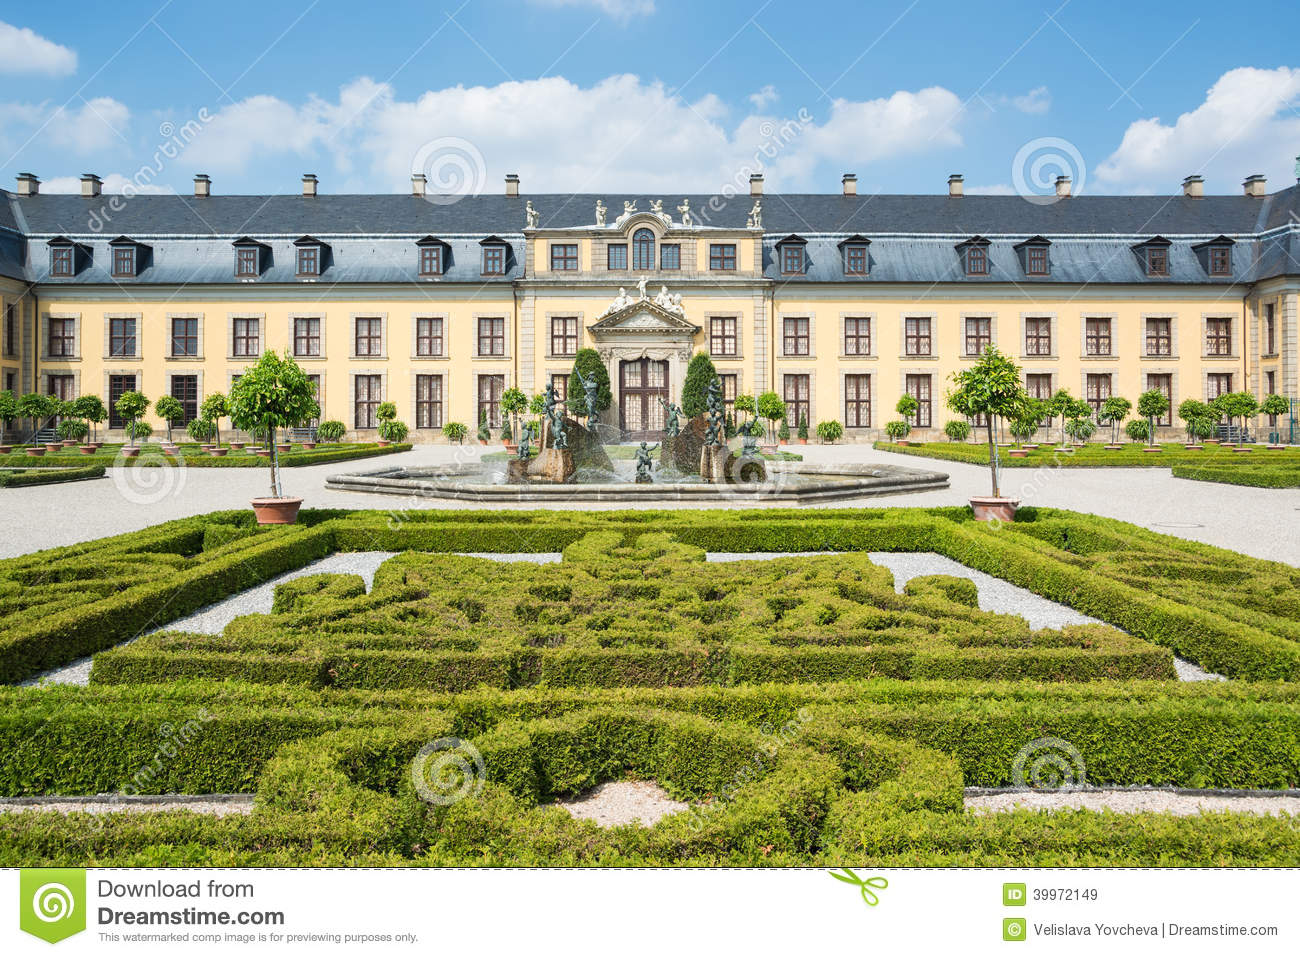 the old palace of herrenhausen gardens stock image image 39972149. Black Bedroom Furniture Sets. Home Design Ideas